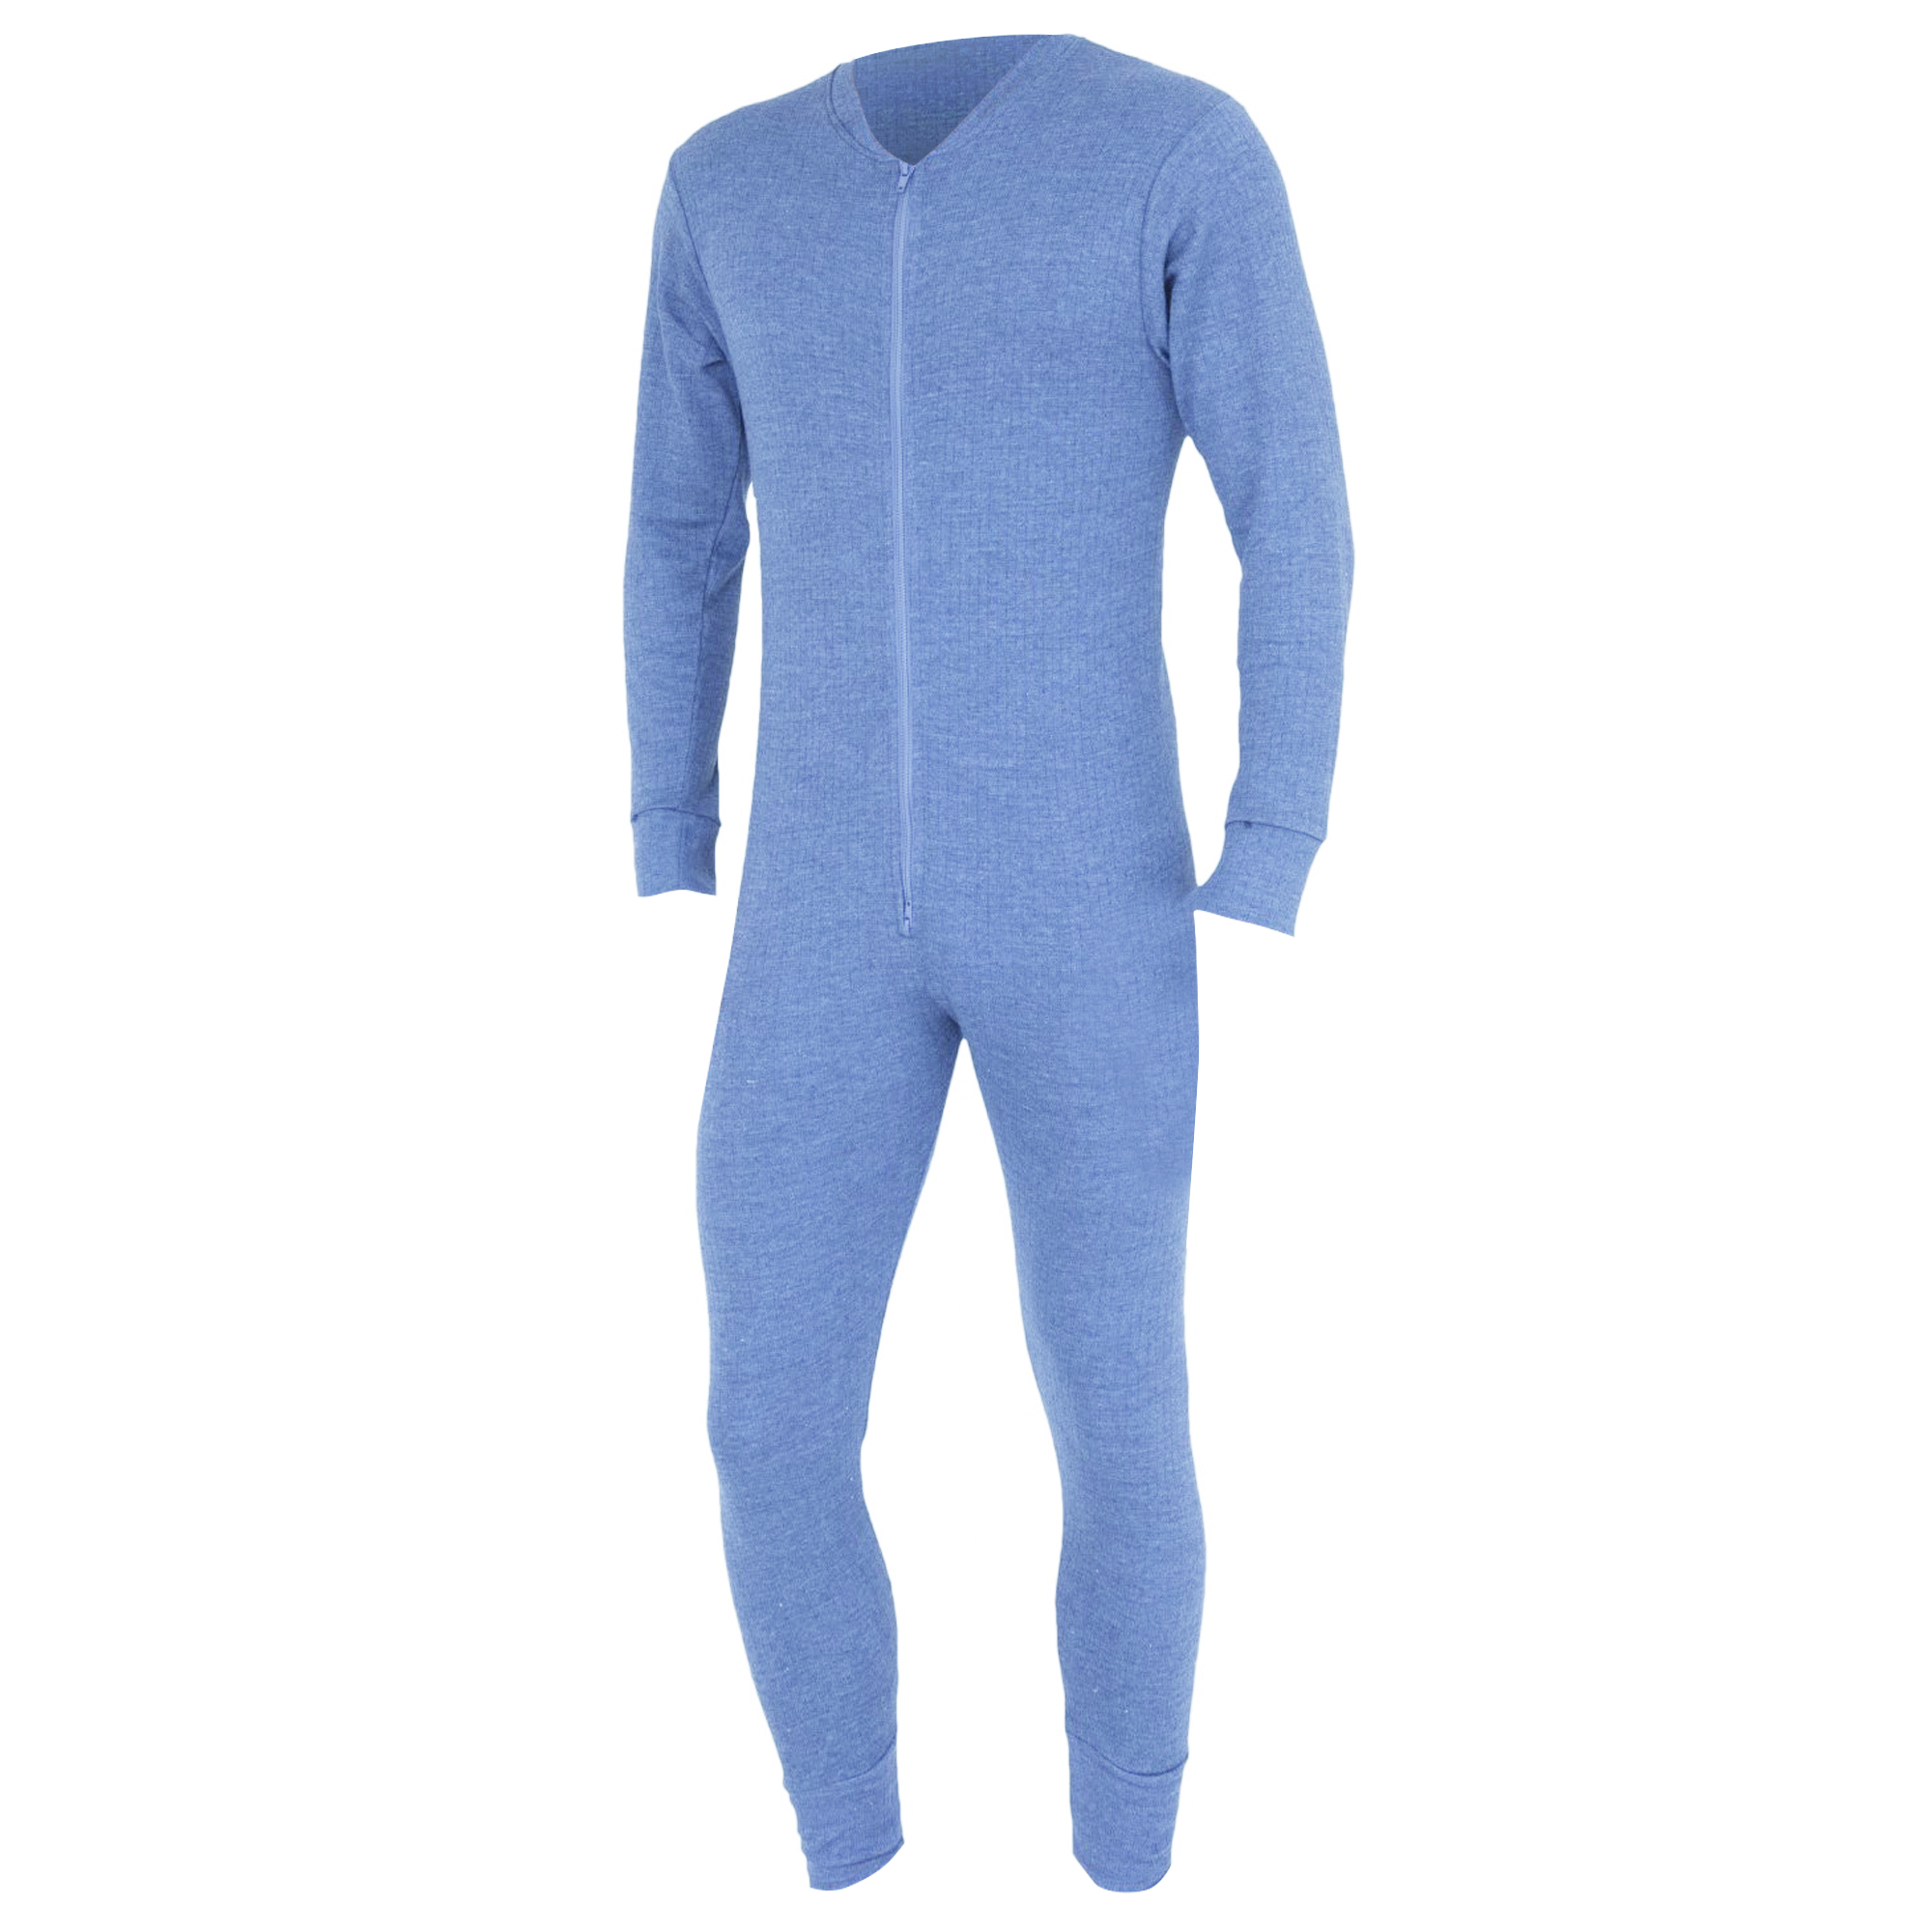 FLOSO Mens Thermal Underwear All In One Union Suit | eBay